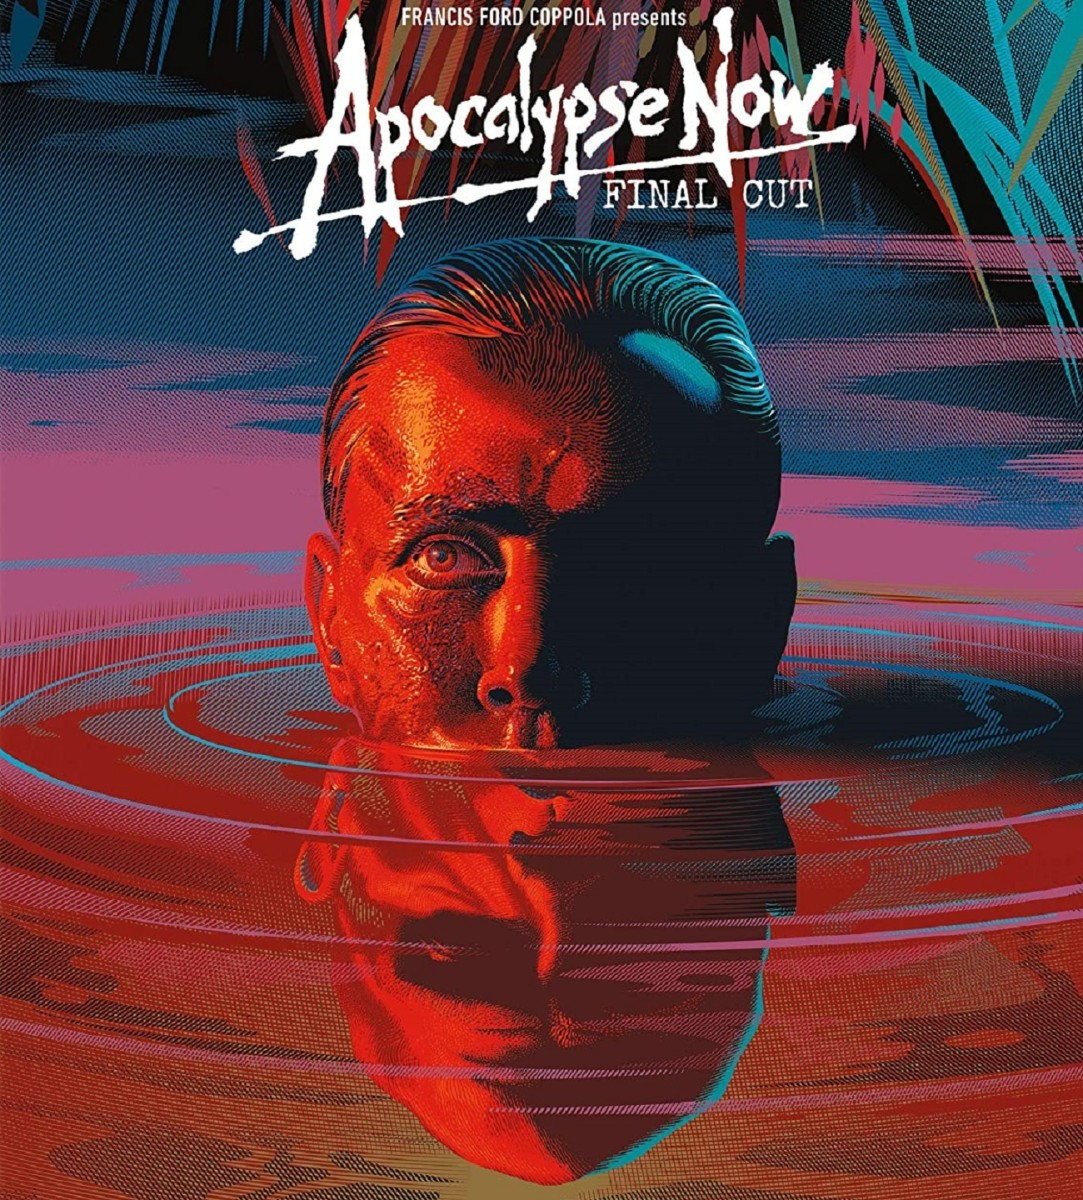 apocalypse-now-a-journey-to-the-violent-self